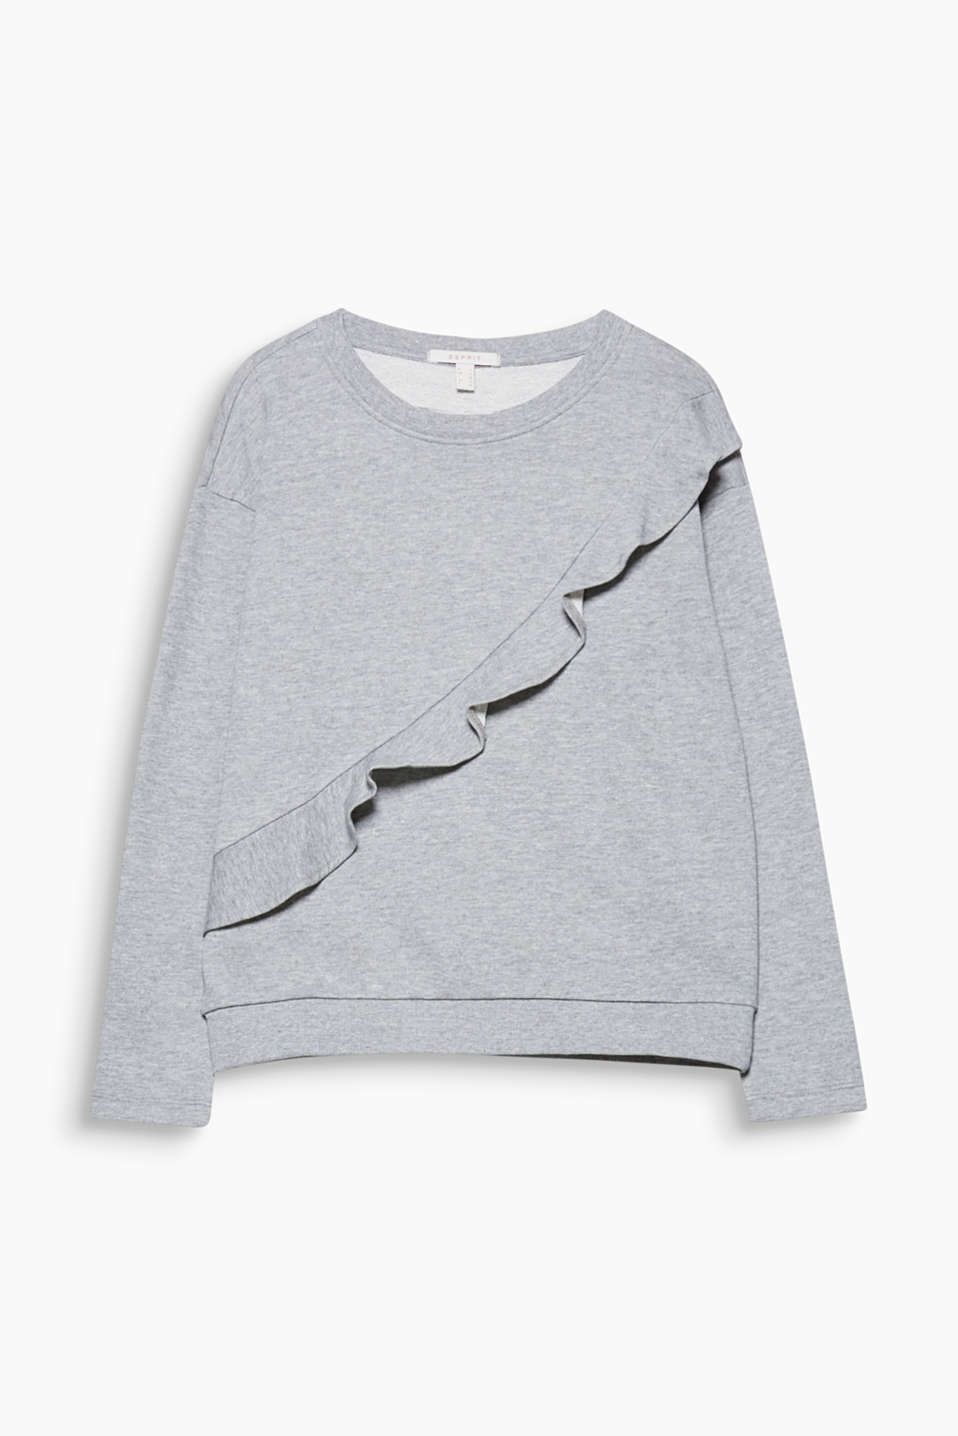 Comfort meets romantic frills and modern melange on this lightweight, blended cotton sweatshirt!